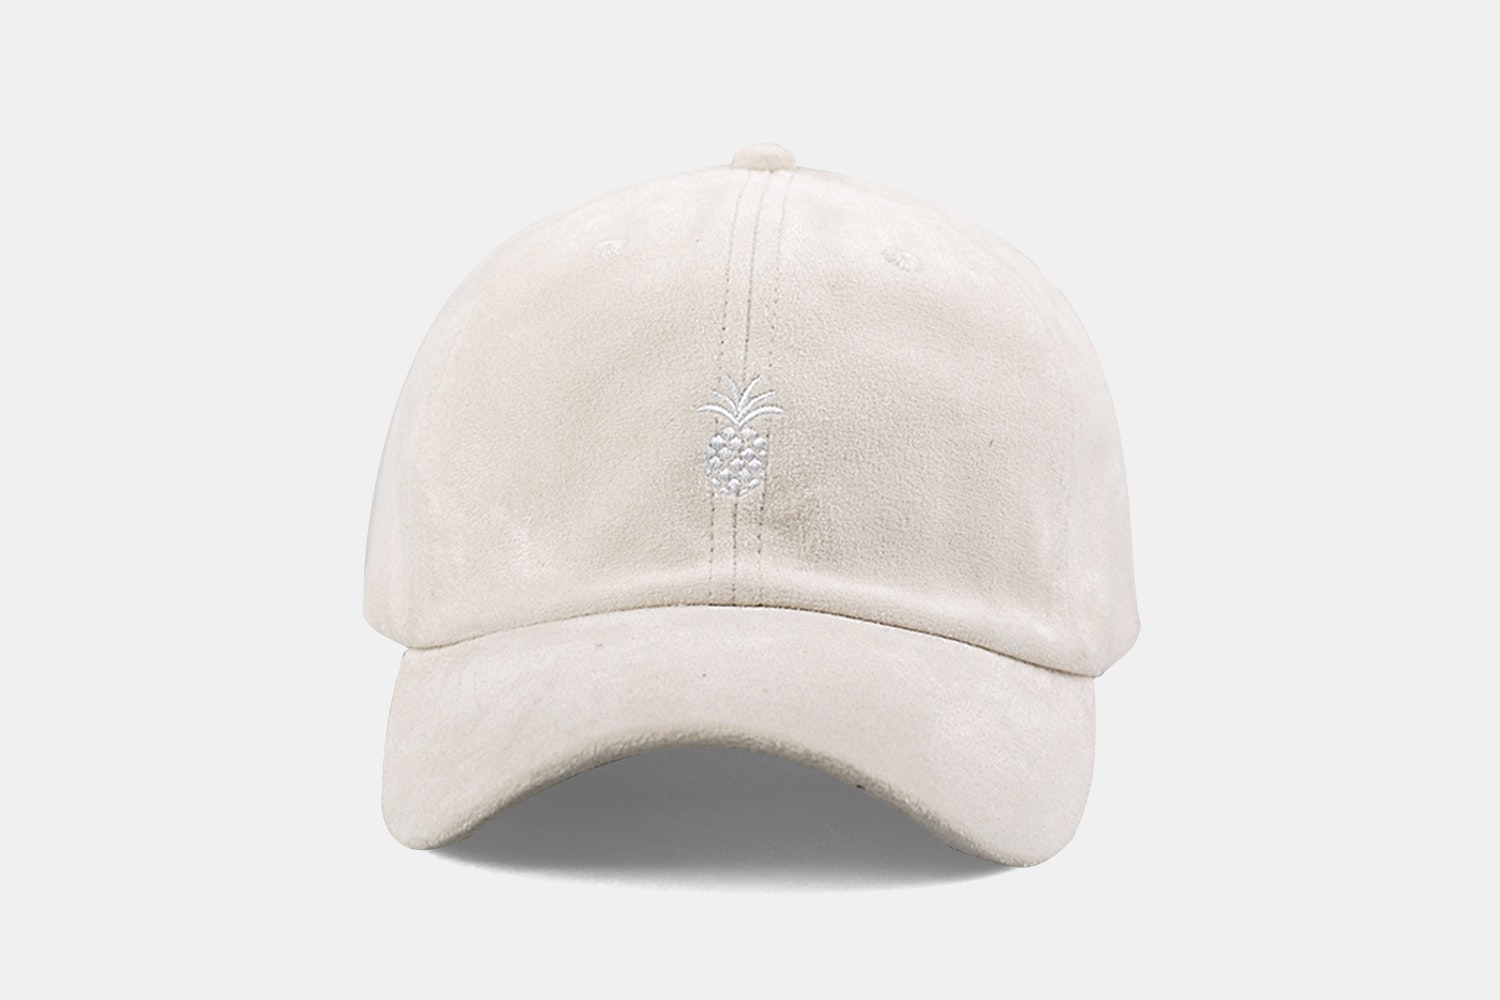 Pineapple Suede Cap - Cream